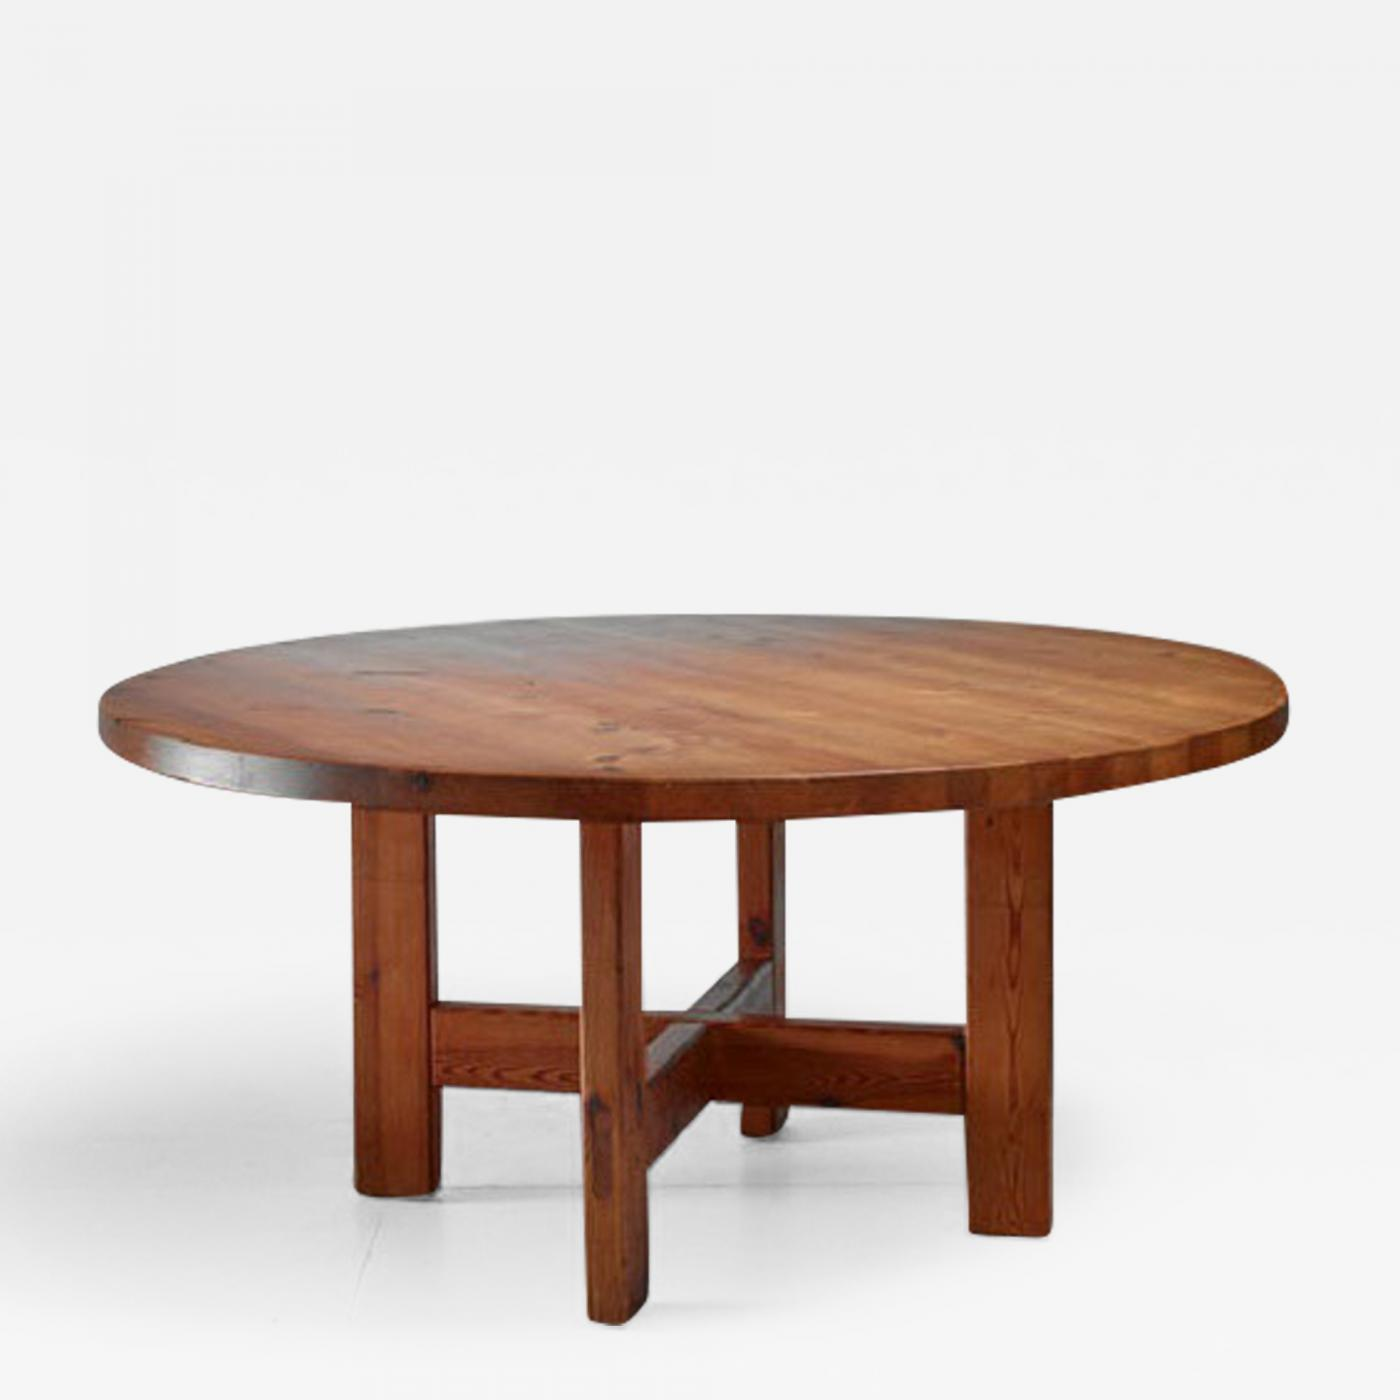 Roland Wilhelmsson Pine Table, Sweden, 1960s